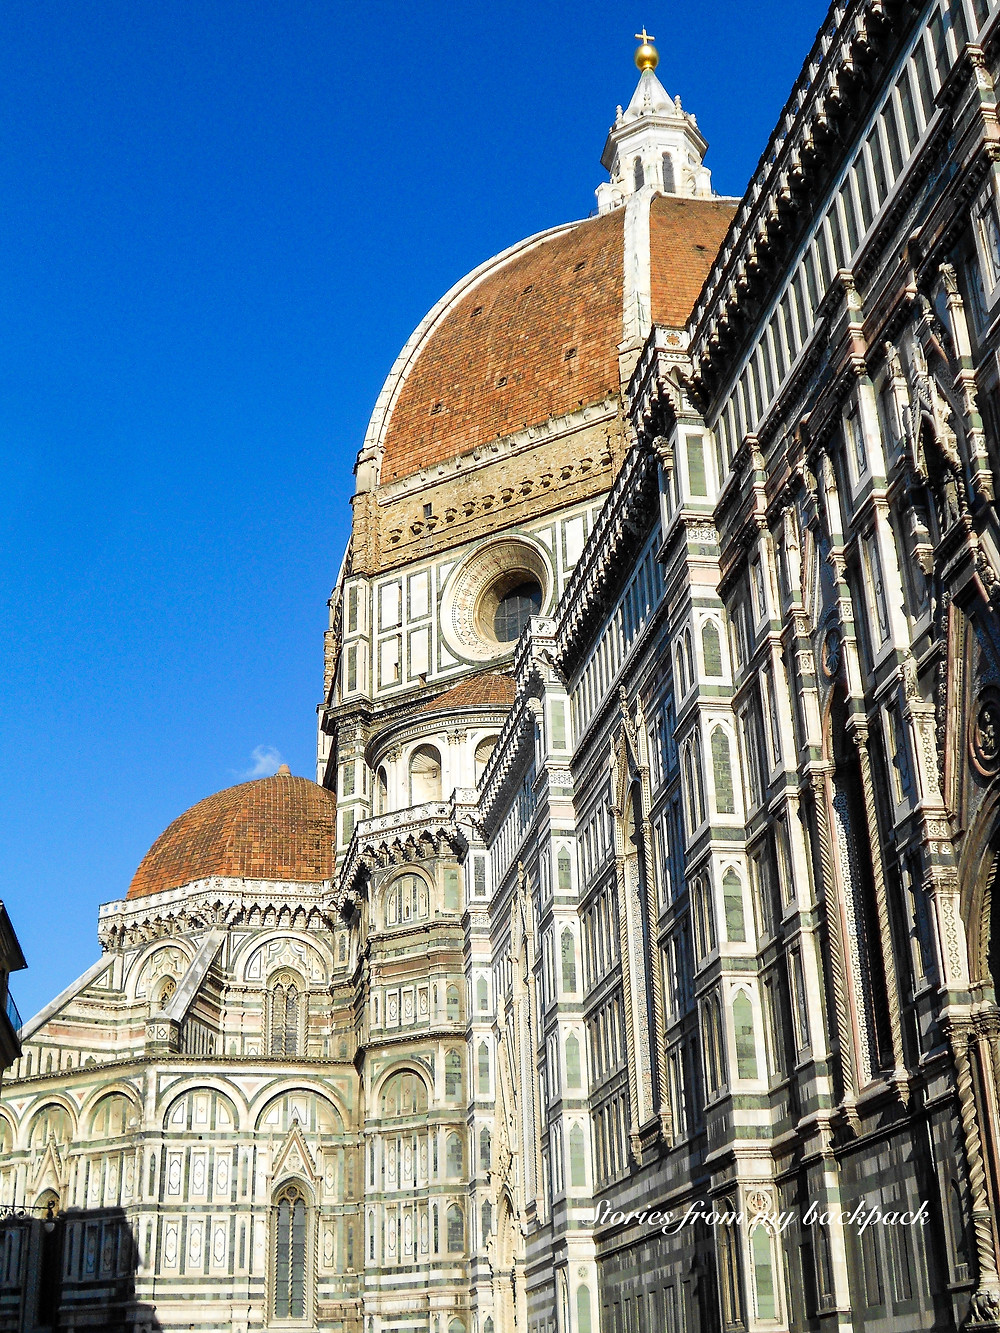 Brunelleschi's Dome, Florence, Things to do in Florence, Florence sightseeing, Florence architecture, Florence budget sights, best views in Florence